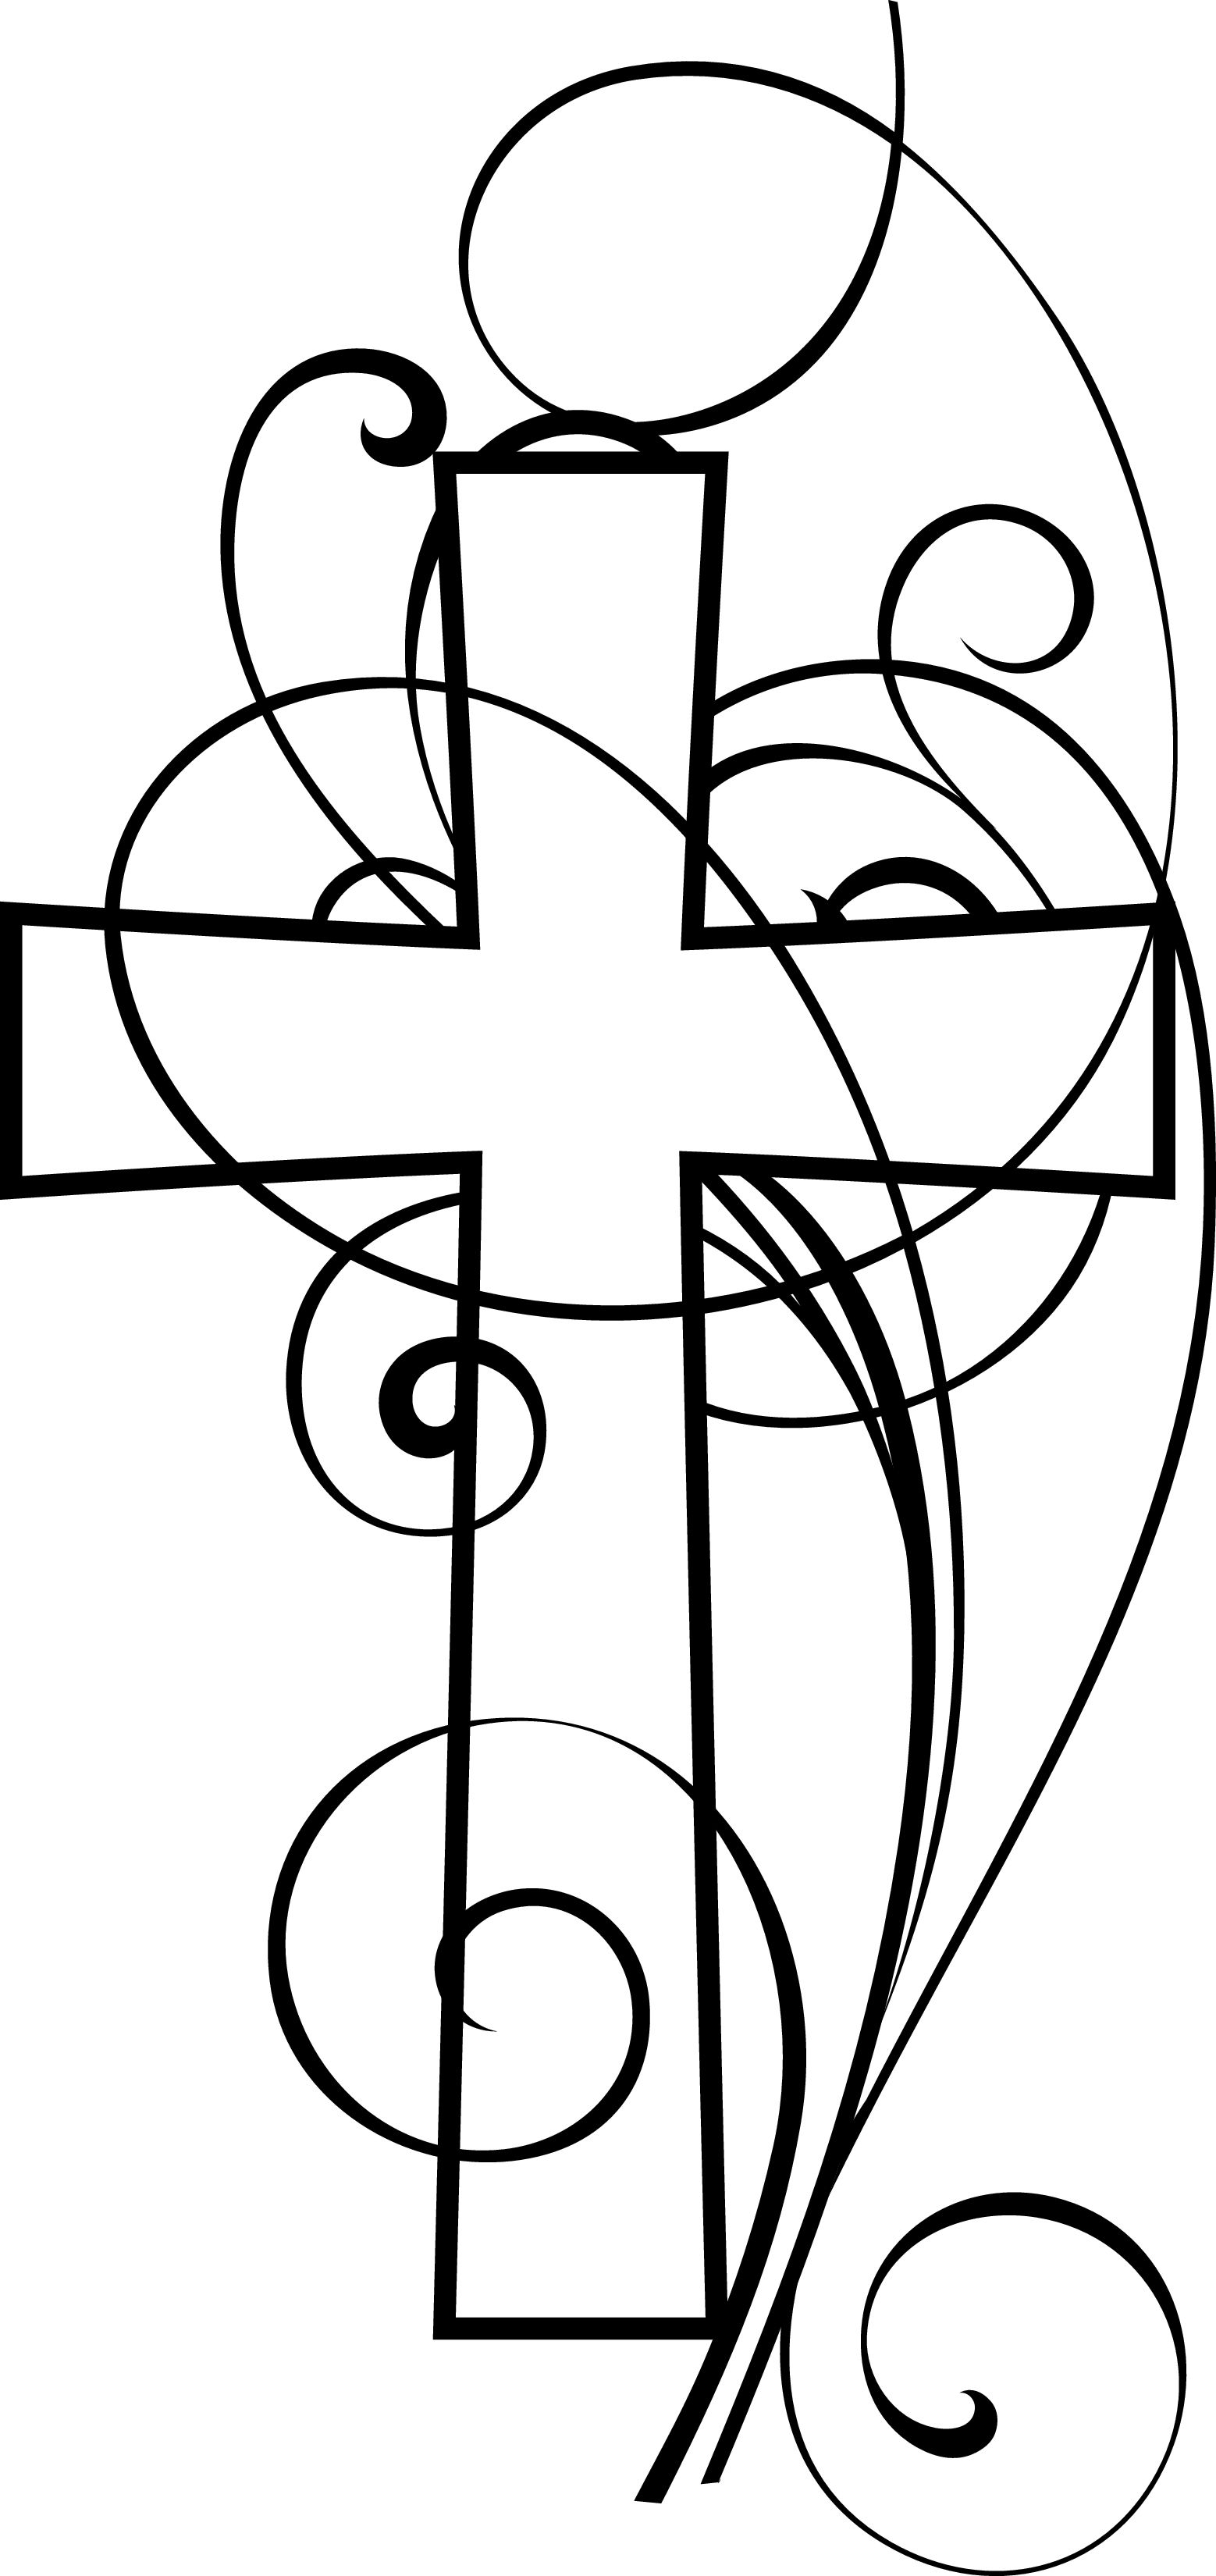 hight resolution of cross clipart google search